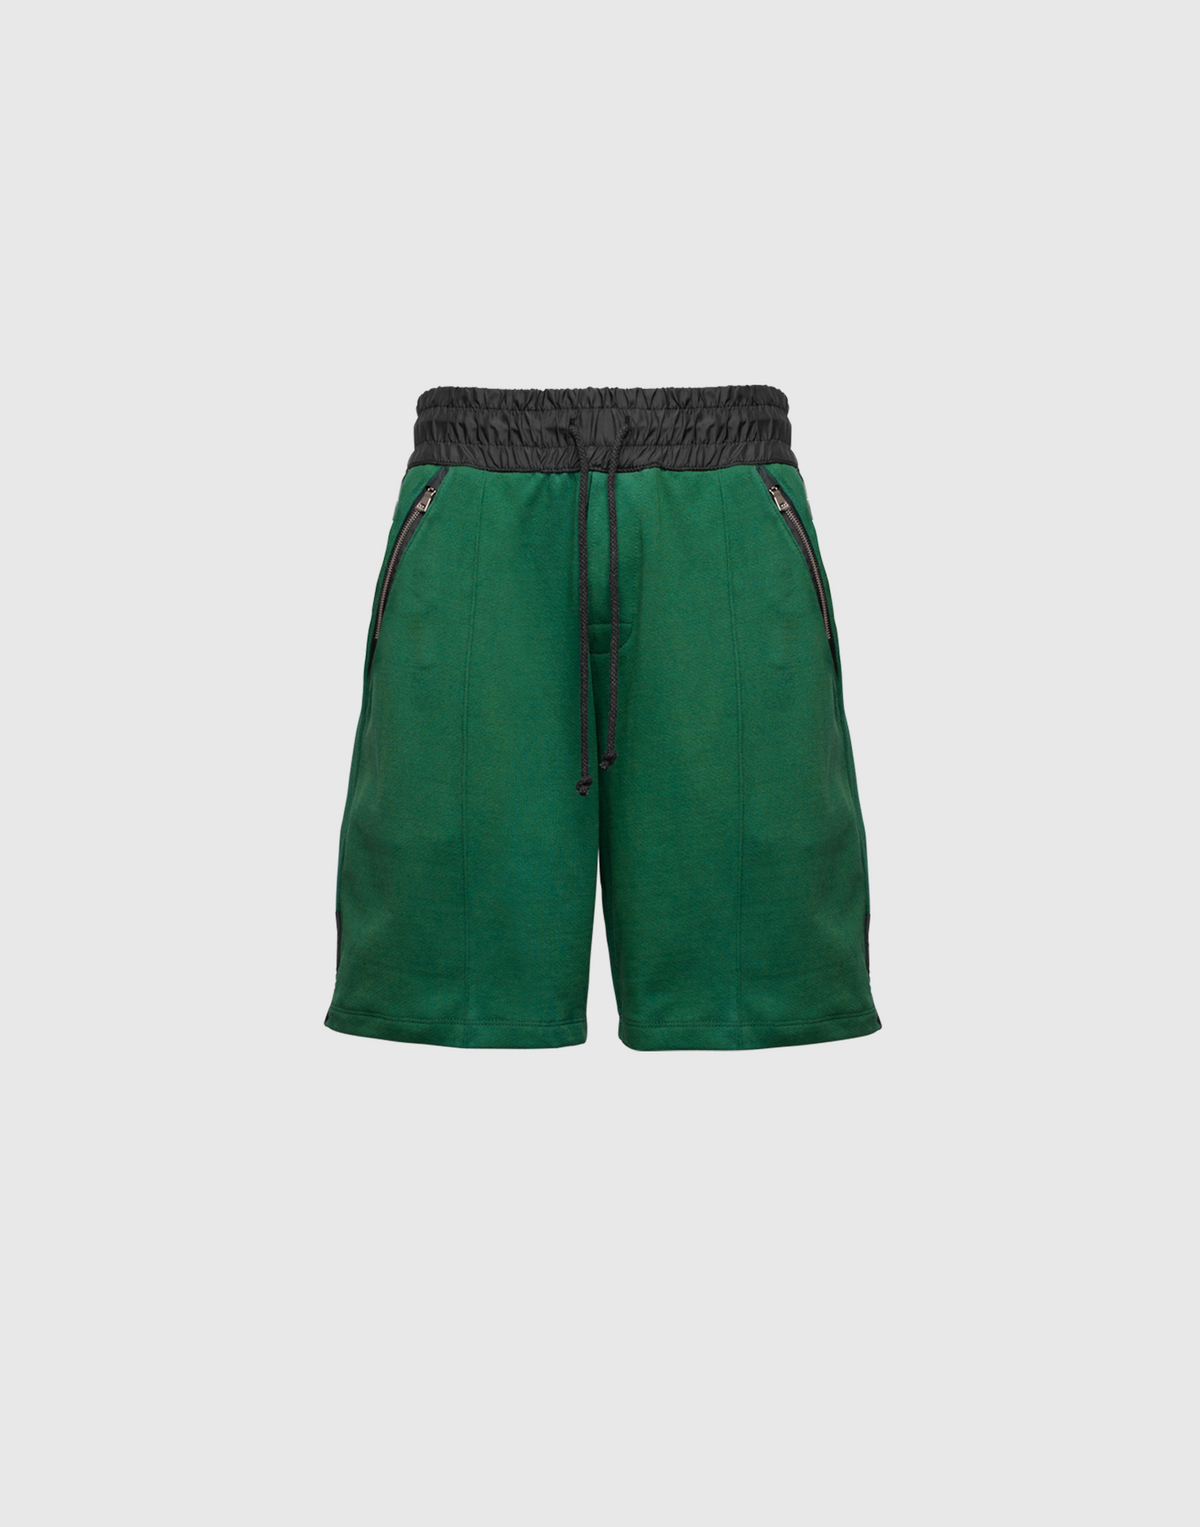 Mercer Shorts - EMERALD